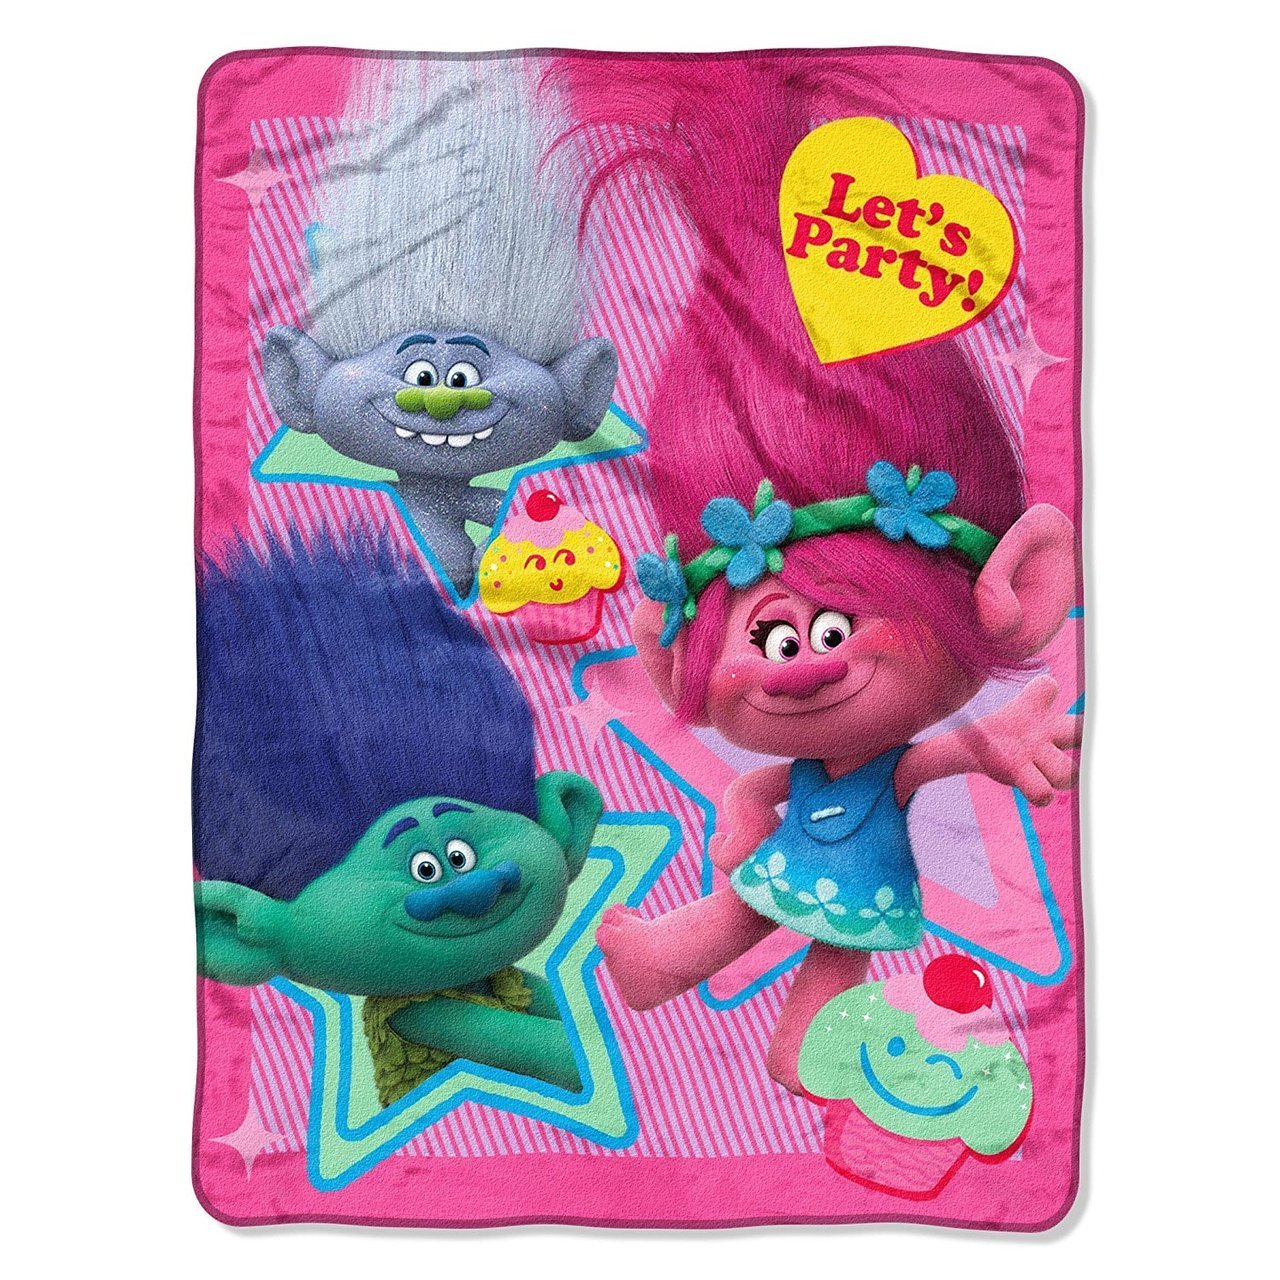 DreamWorks Trolls 'Lets Party' Plush Throw Blanket - 46 in. x 60 in. The Northwest Company 10983490